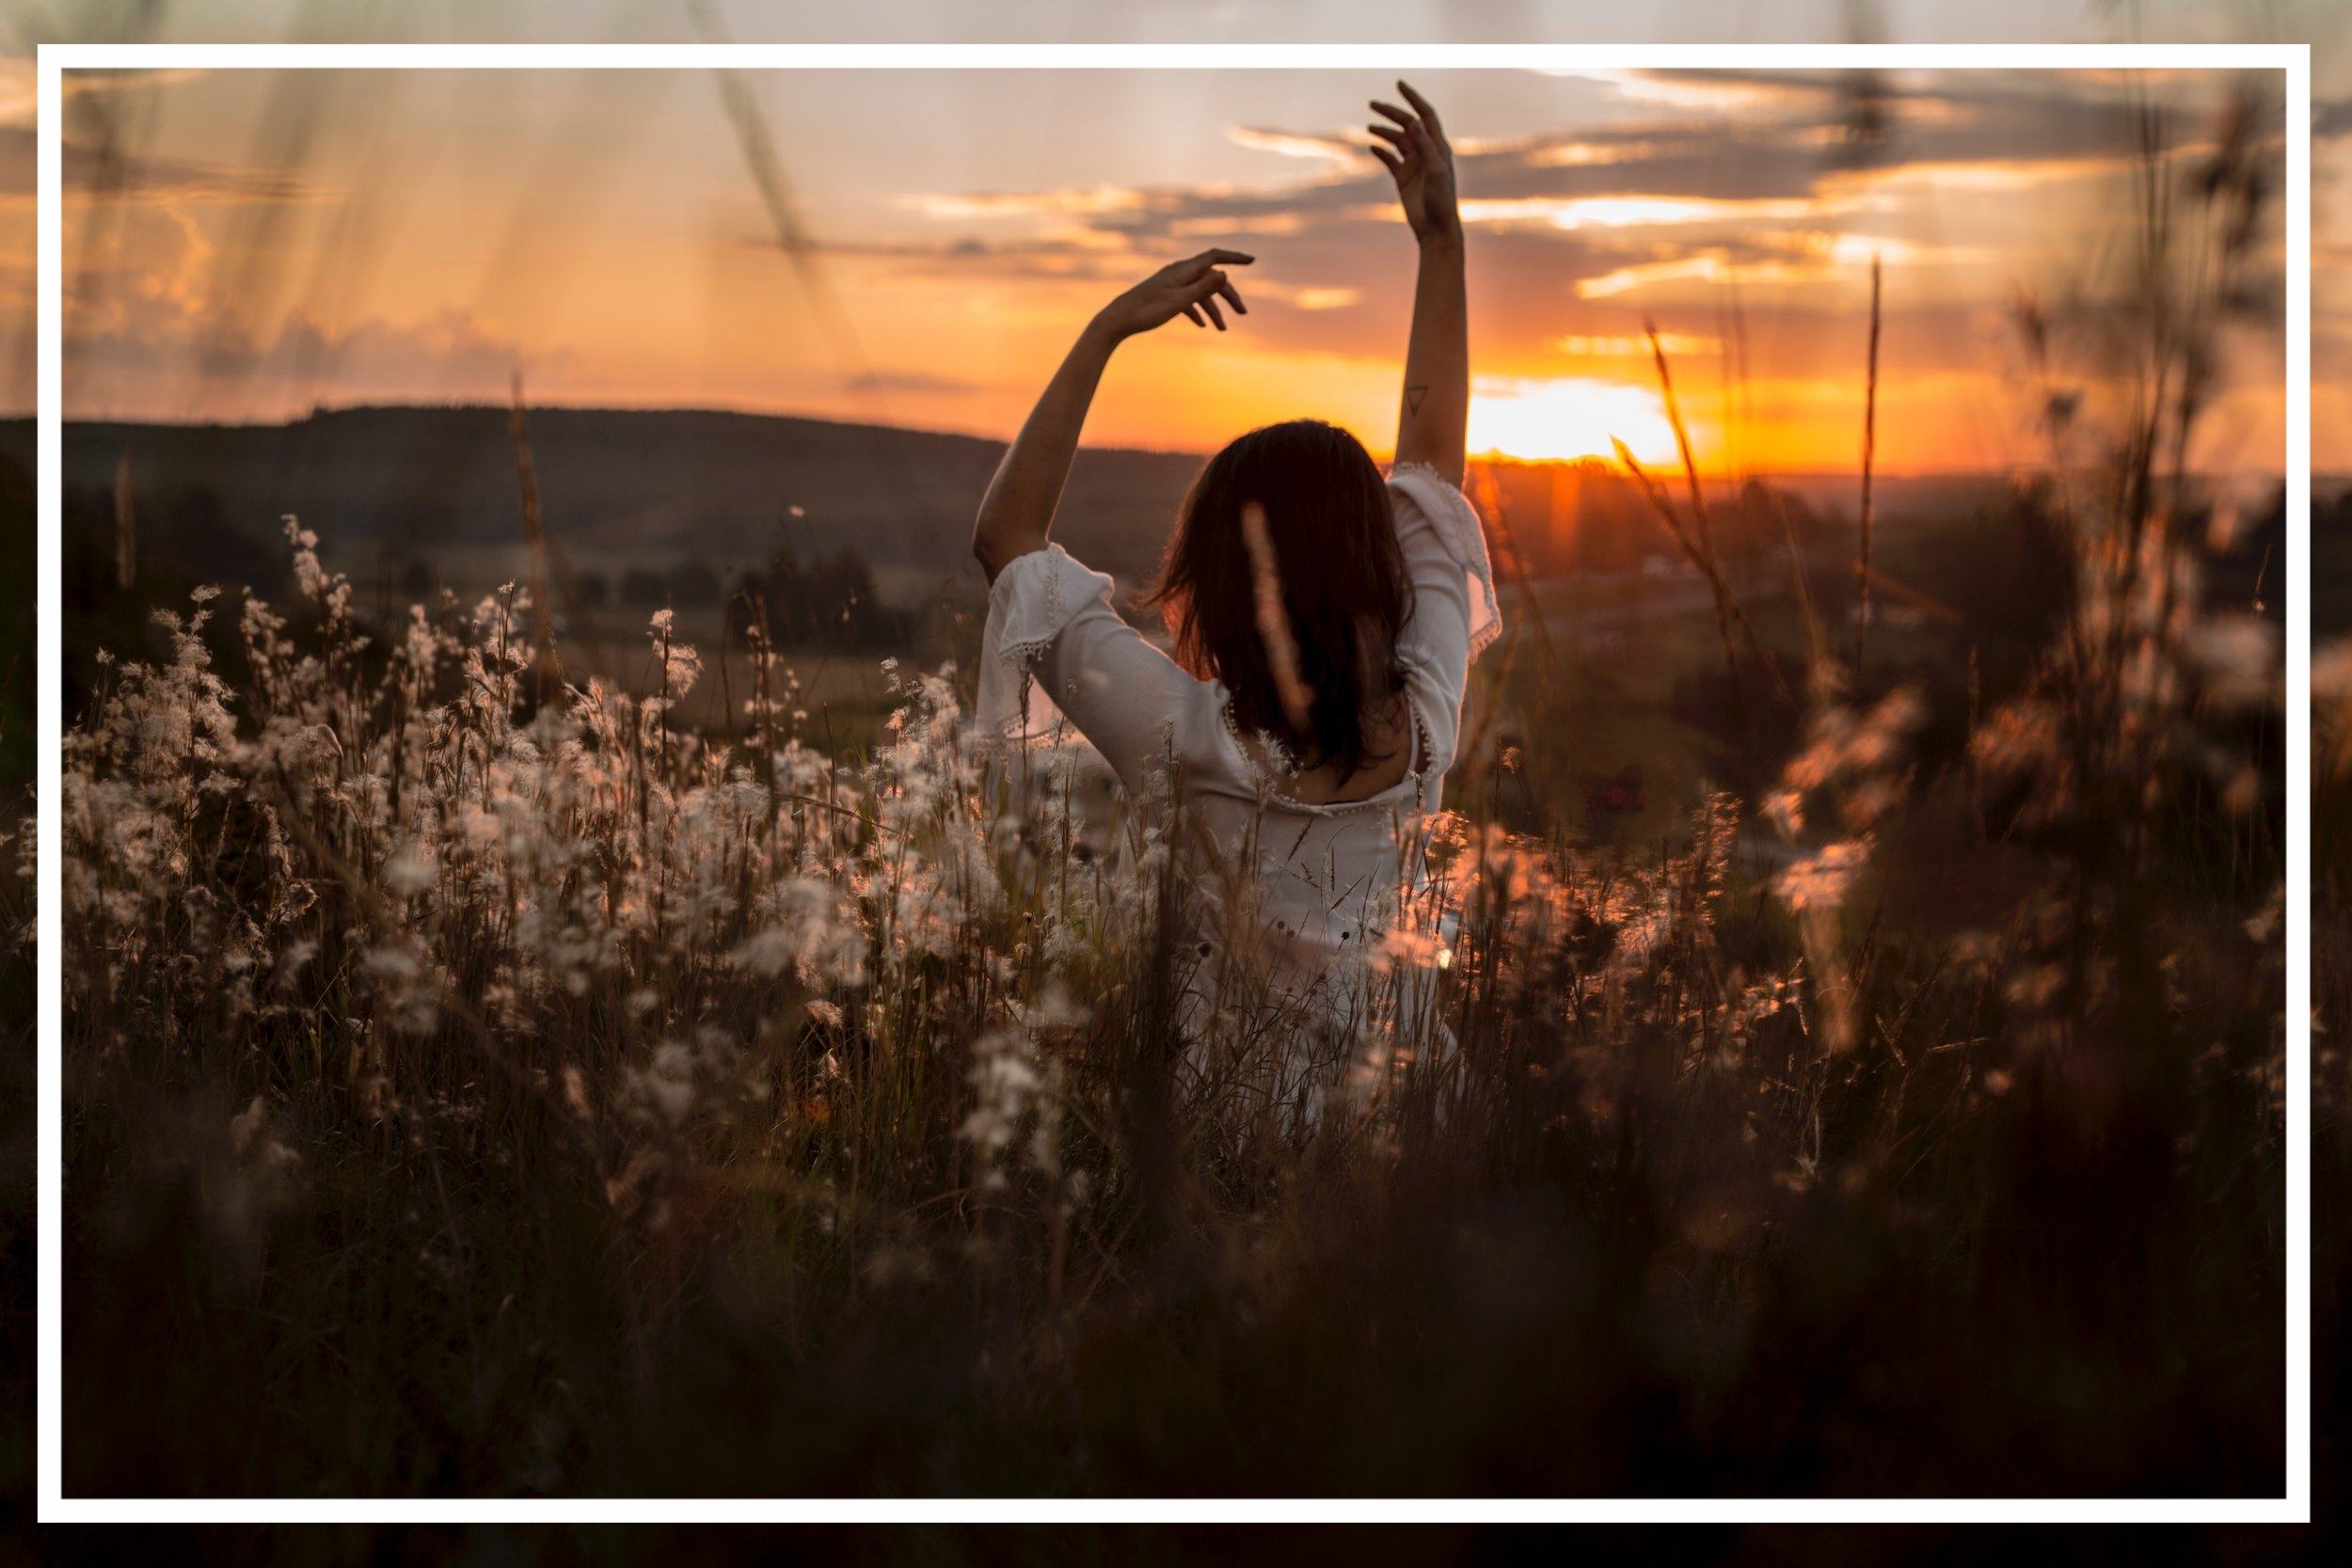 Free eBook: Stressed to Serene in 3 Steps